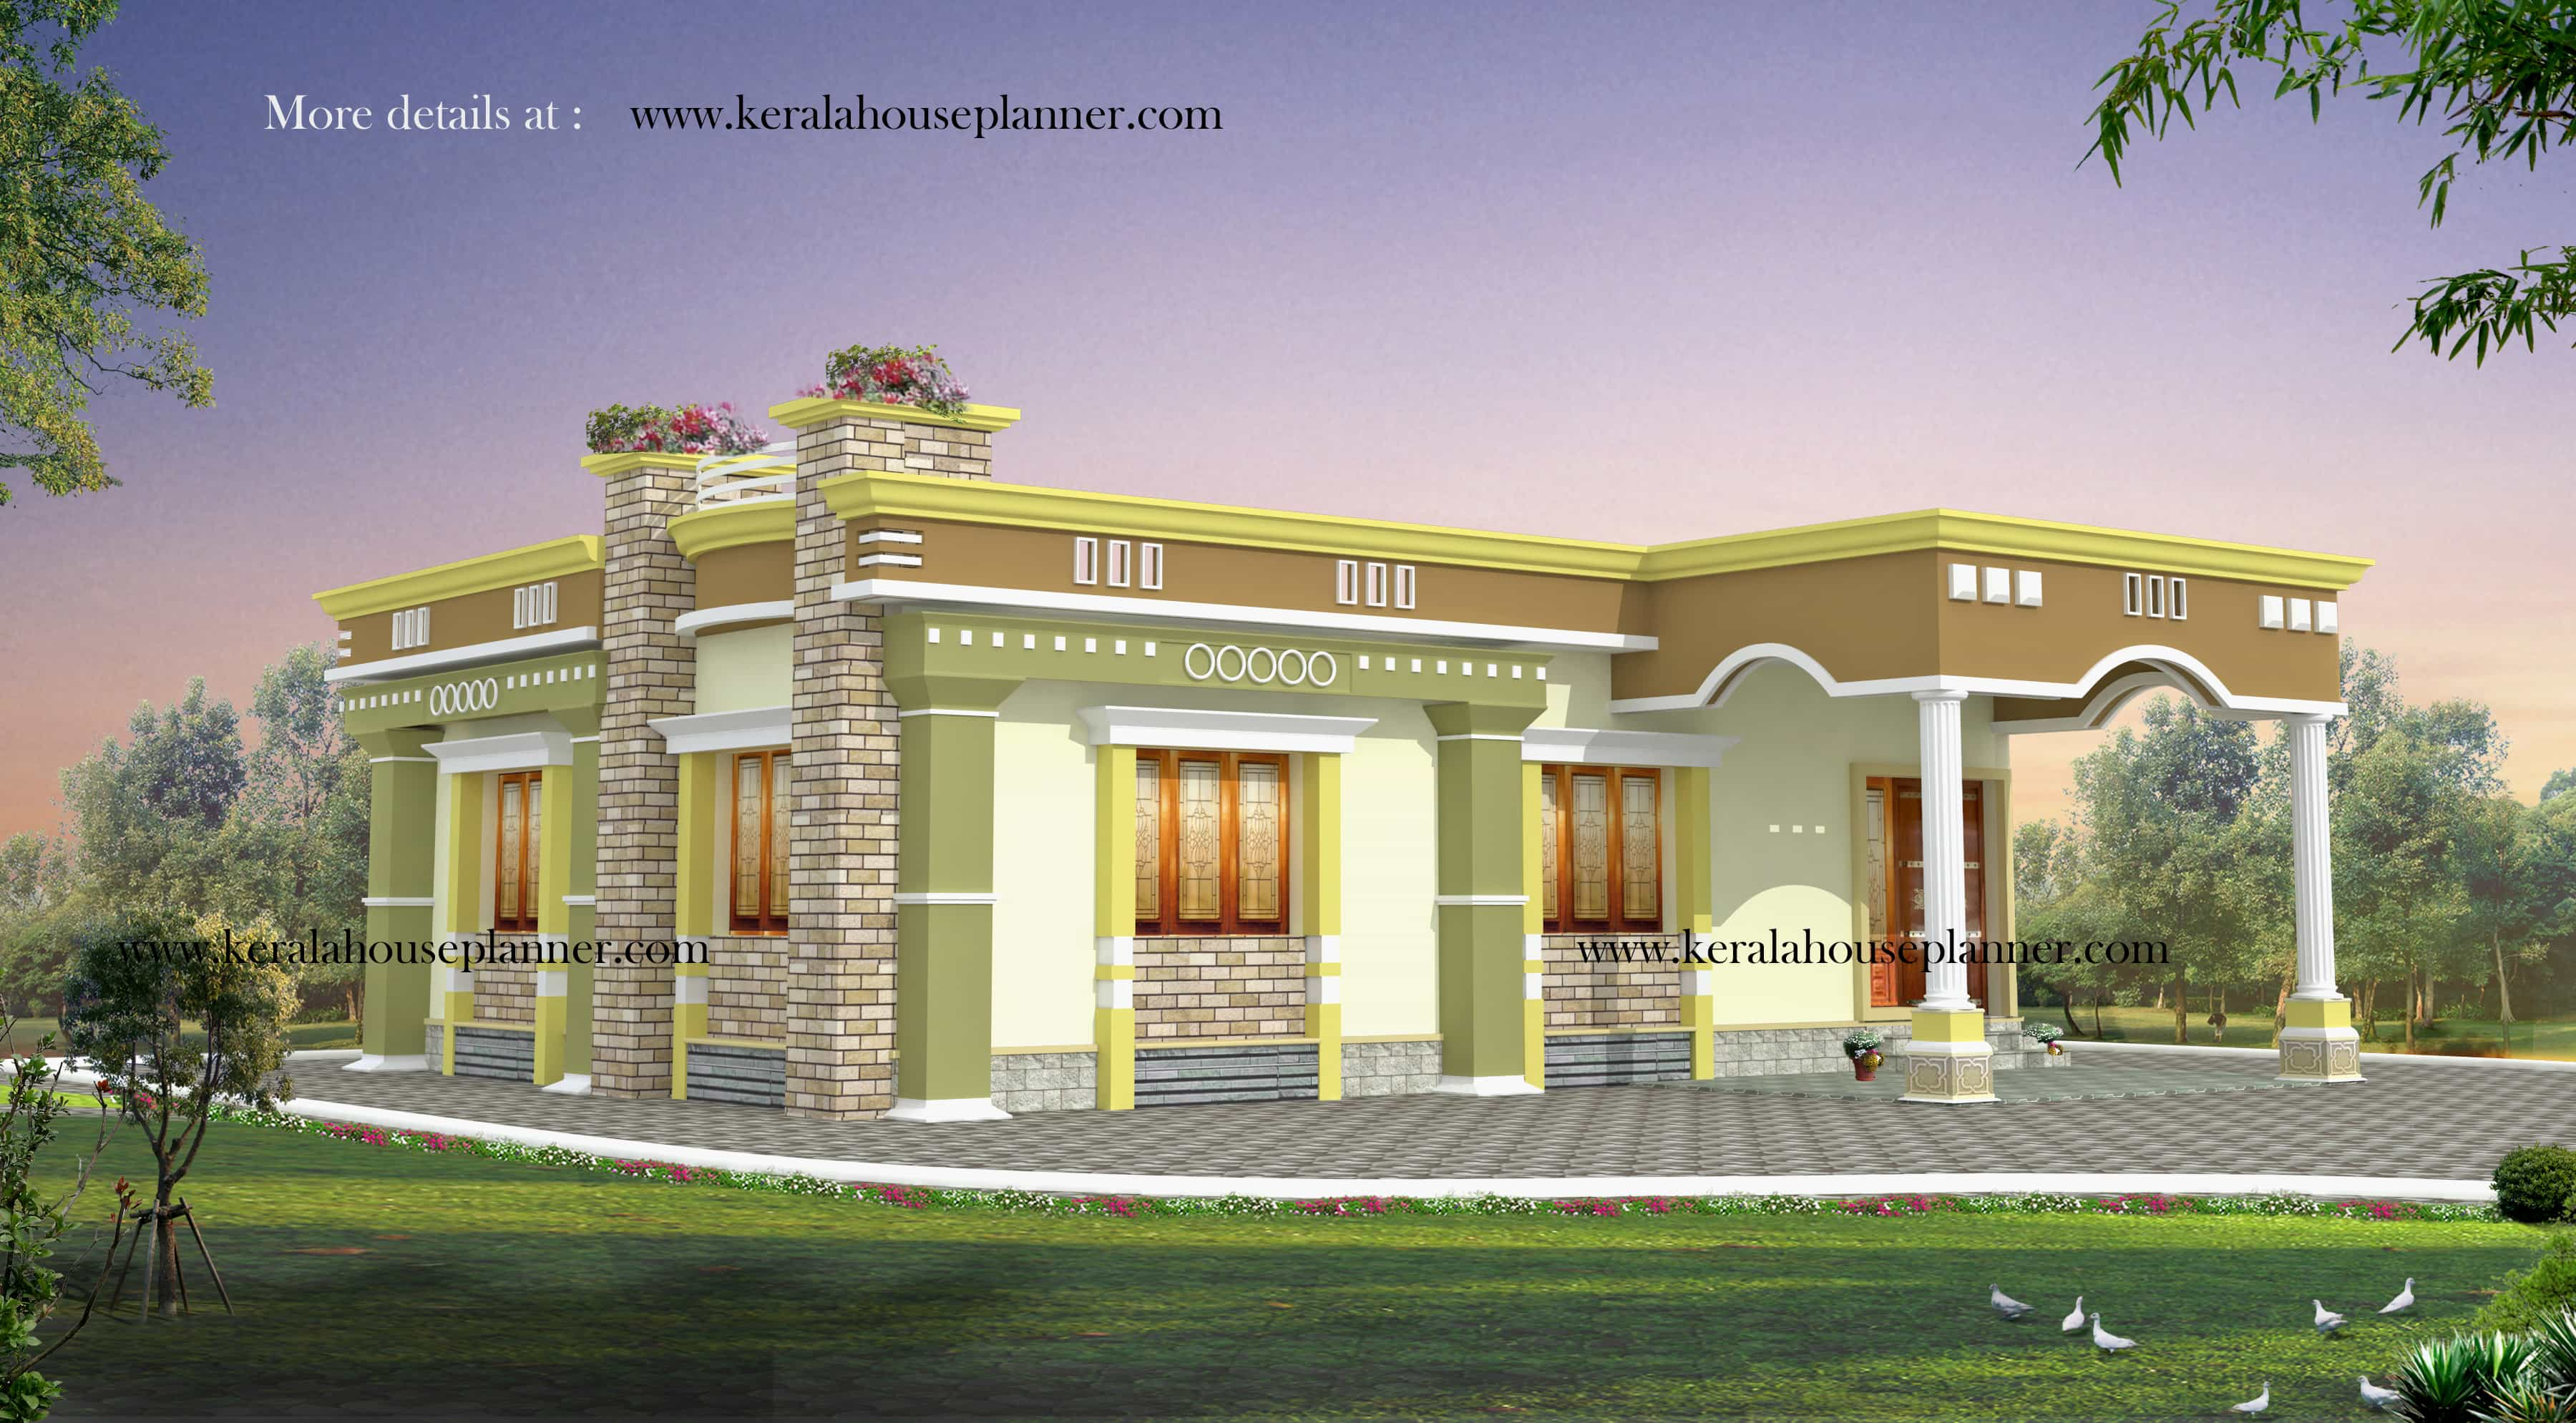 kerala house plans at 1200 sqft for a 2 bhk cute home - Single Floor House Plans 2